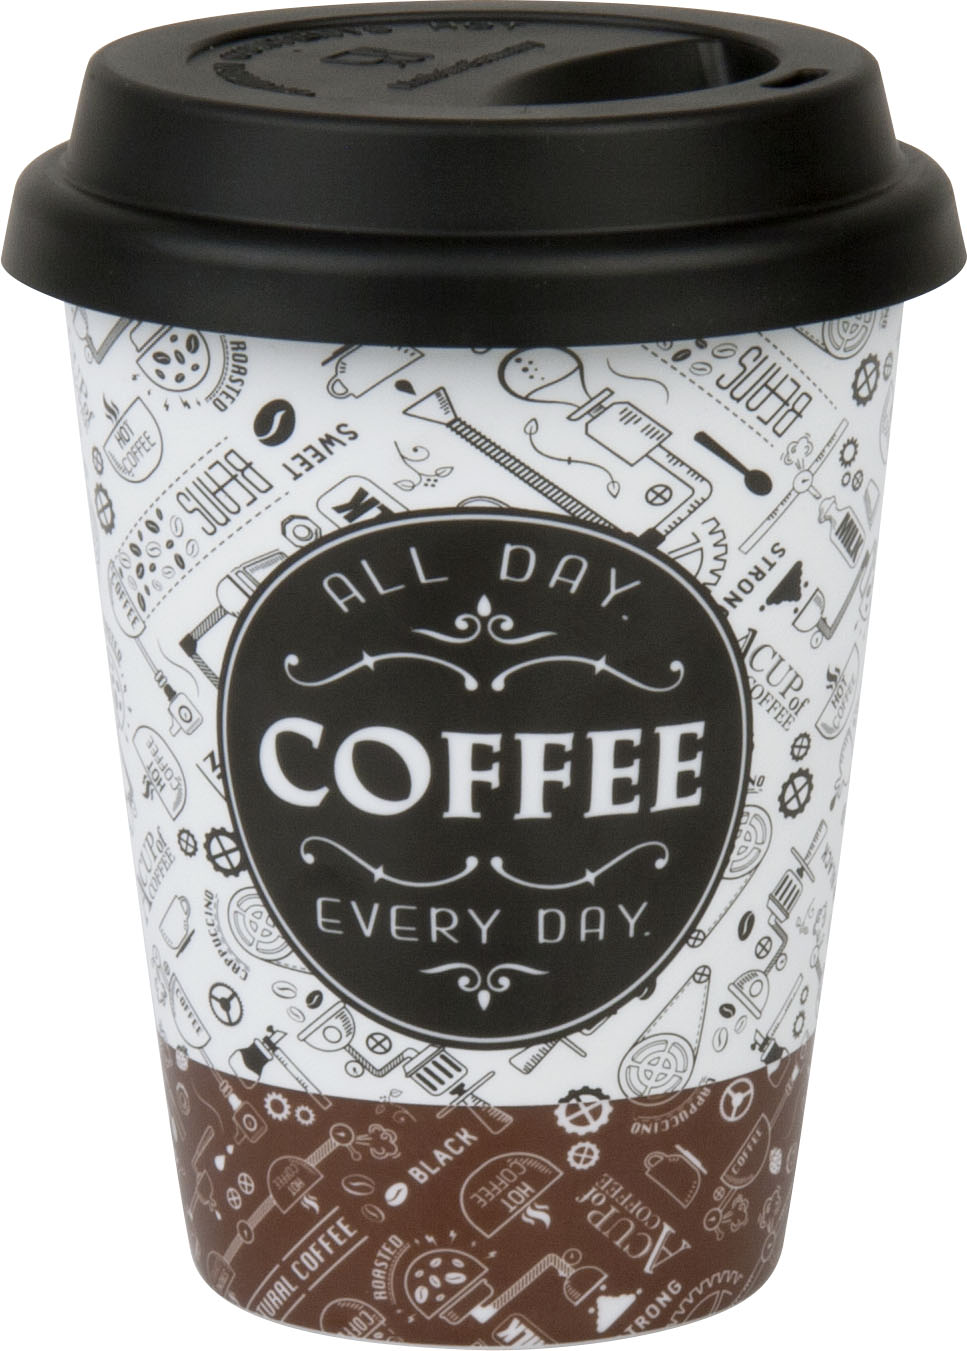 Coffee to go Becher aus Porzellan Kaffee Design